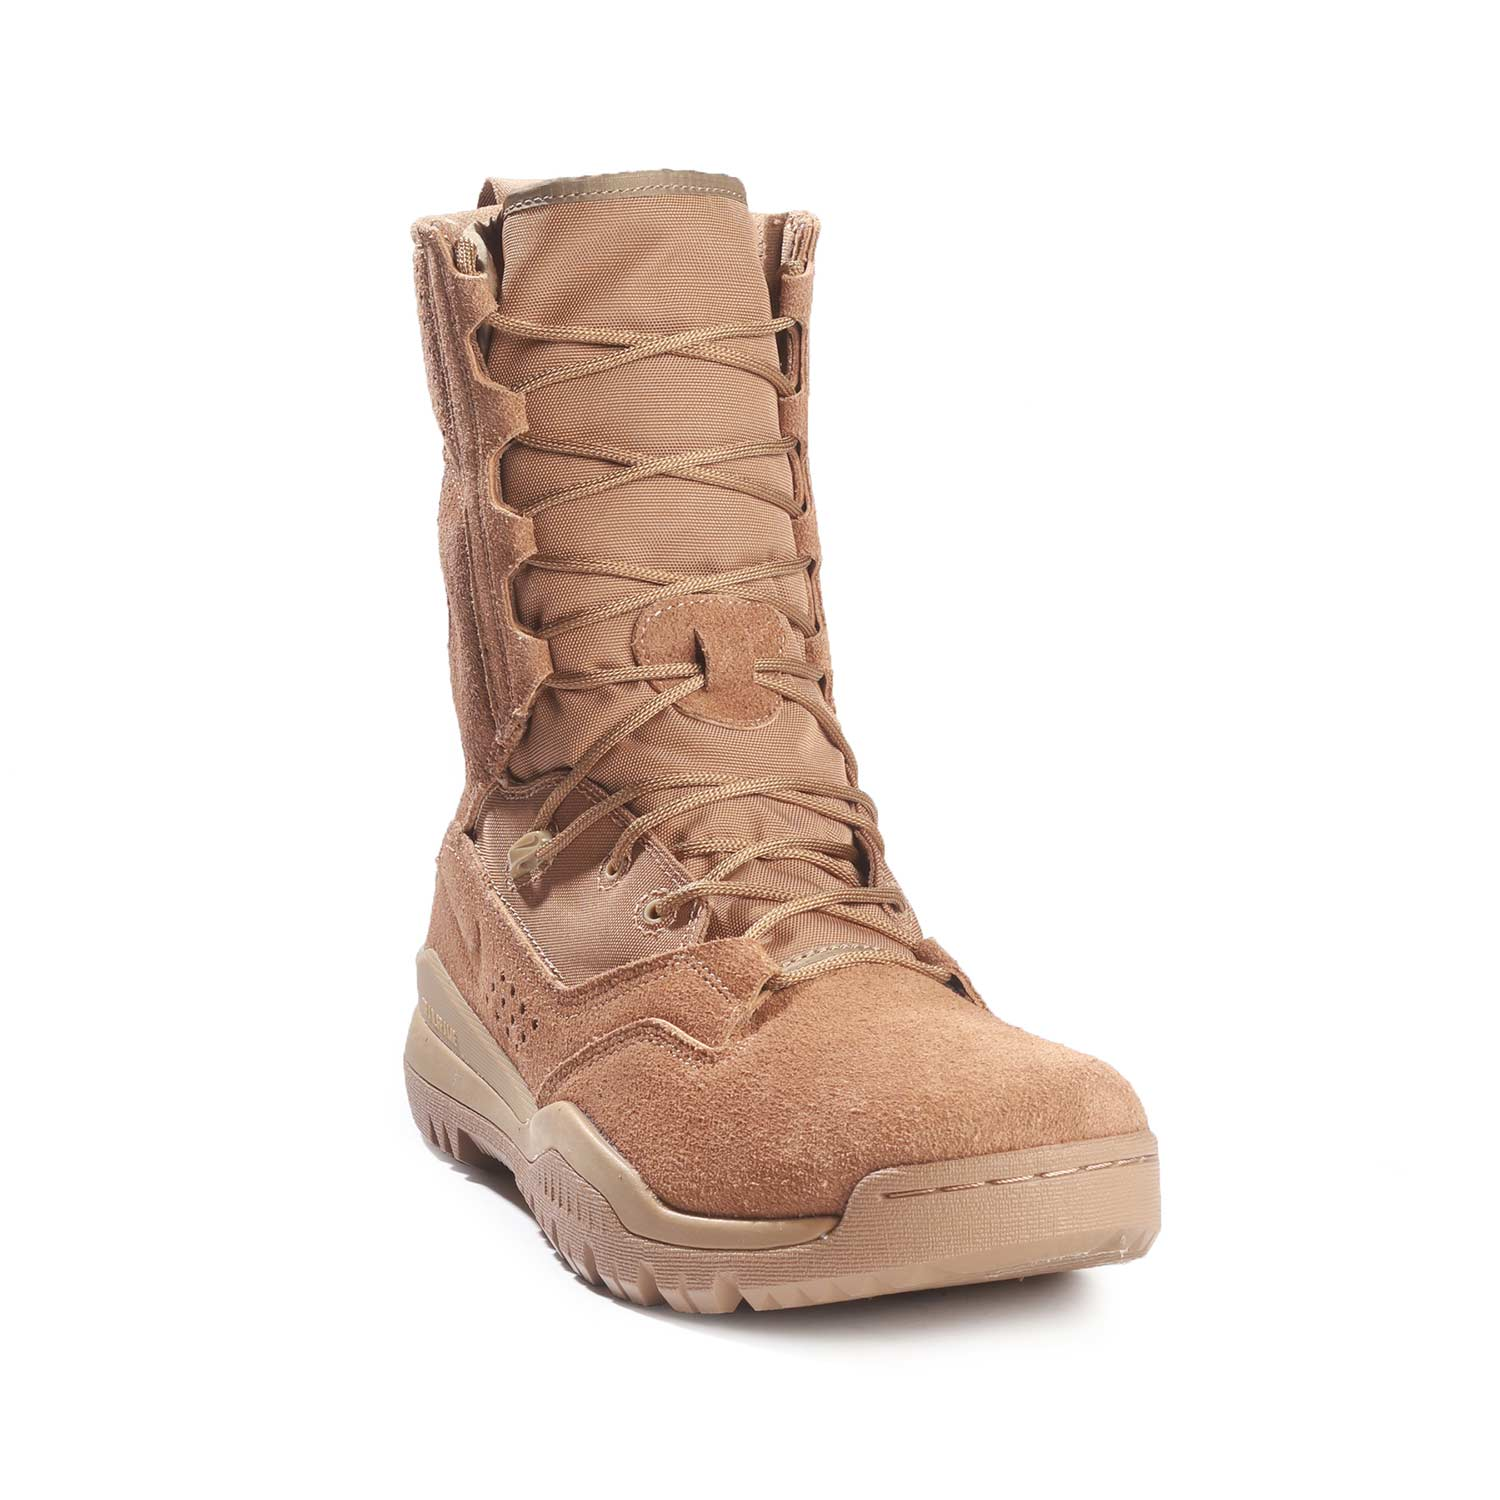 "Nike SFB Field 2 8"" Tactical Boot"